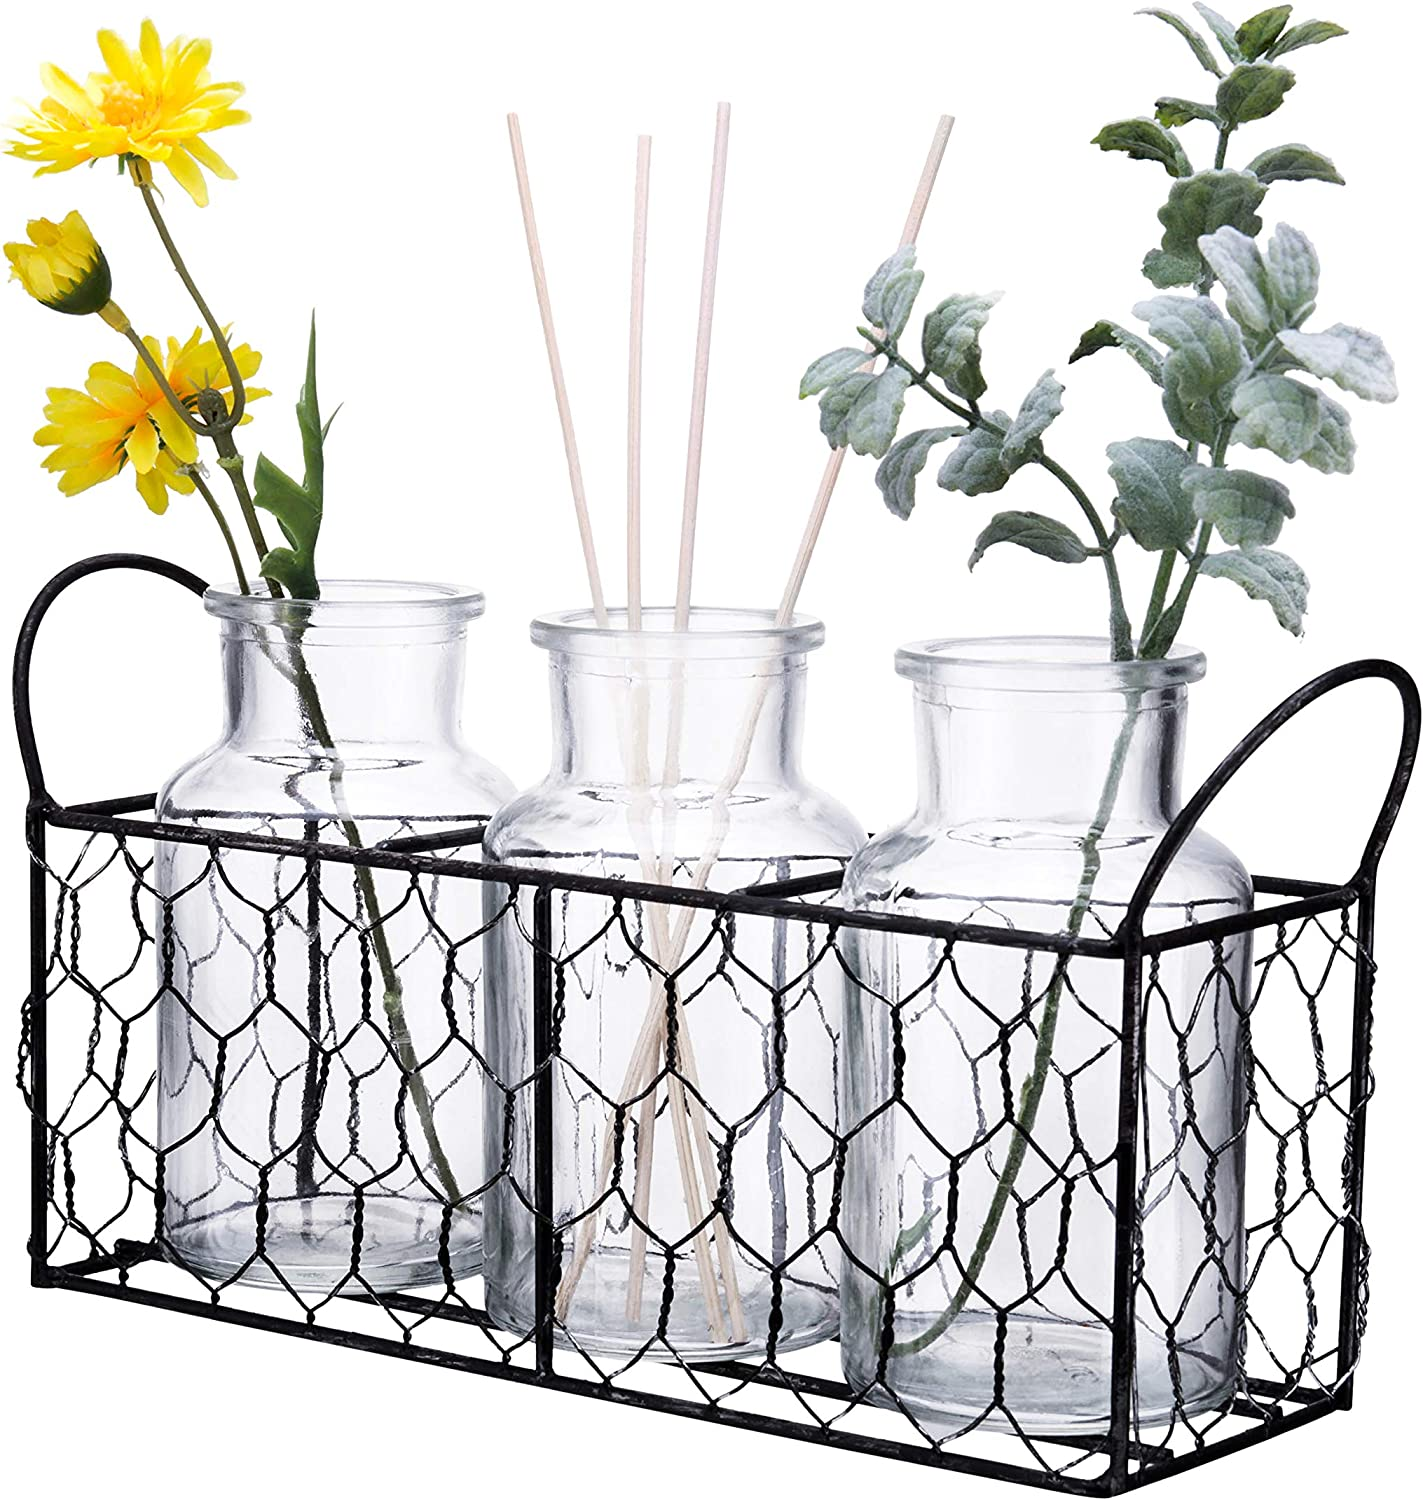 "Diamond Star Clear Glass Milk Bottle Vases in Basket Caddy Vintage Style 3Pcs Jars Sets (11""L X 3""W X 5.5""H)"